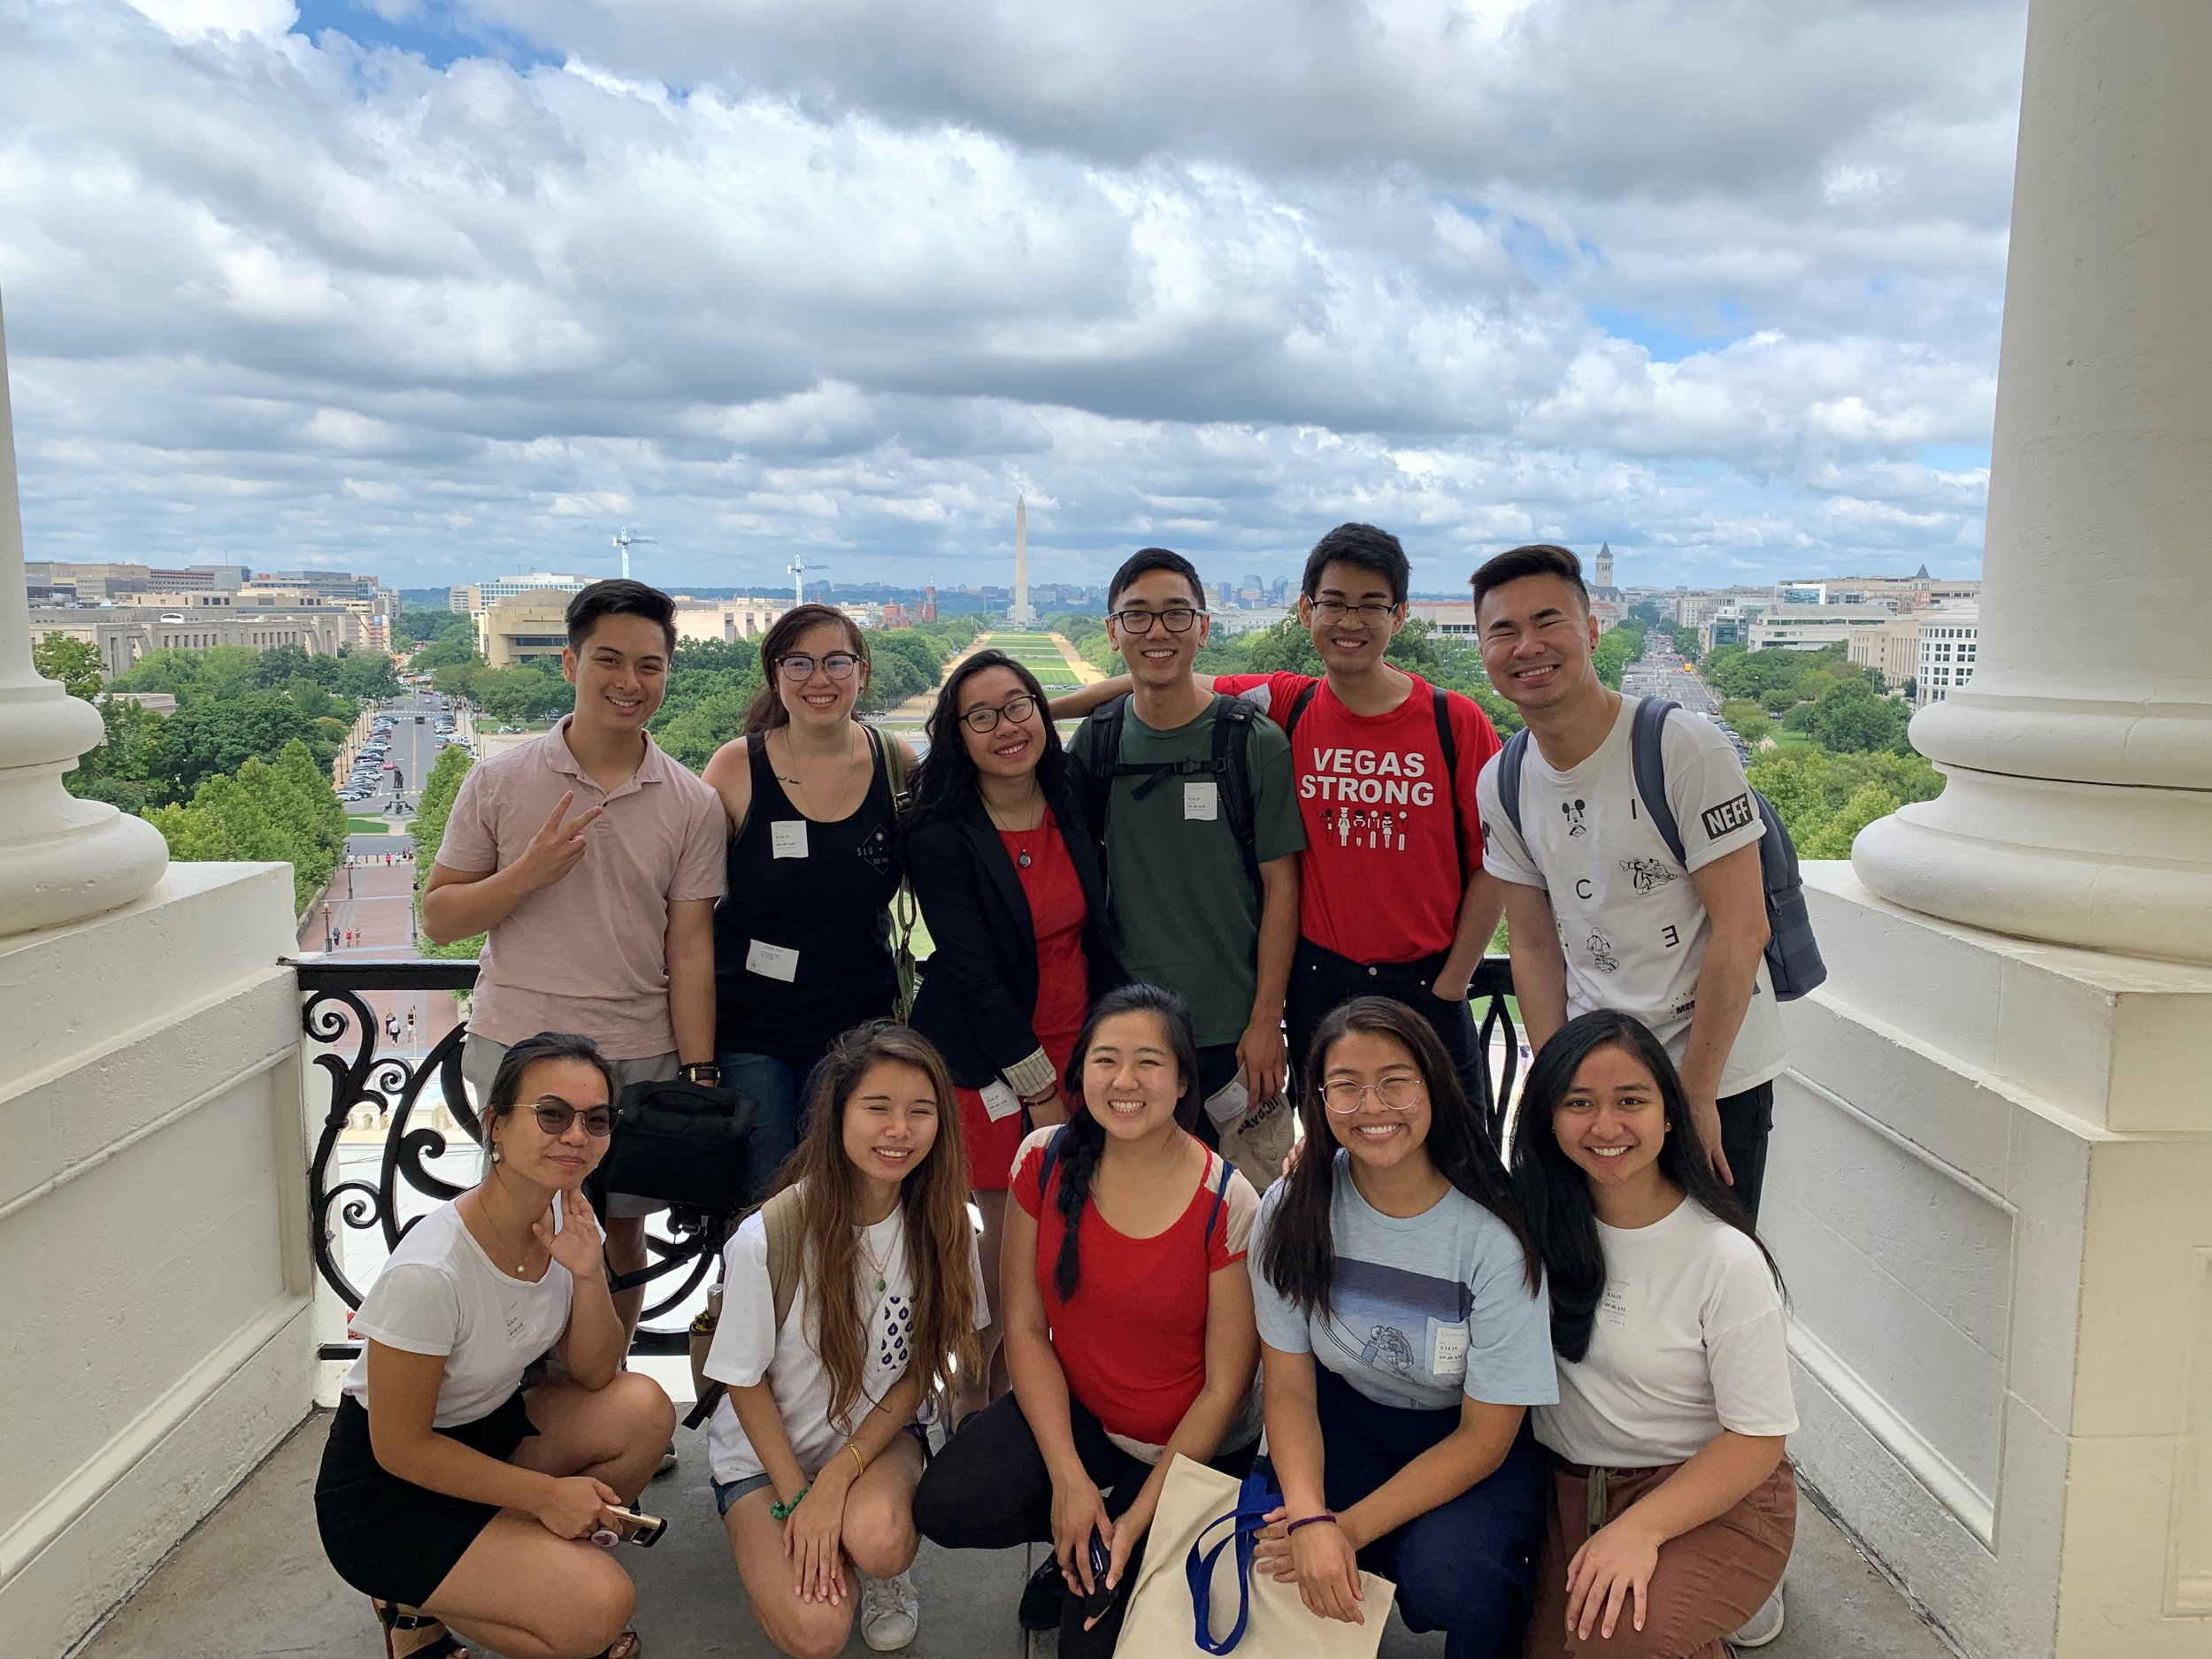 Summer Internship Program - Our 2019 cohort of Summer Interns took a tour of the Capitol! Thank you to Coca Cola, ComcastNBCUNiversal, and Southwest Airlines for making this program possible. For over 35 years, we have been able to develop over 150 students through our DC internship program.